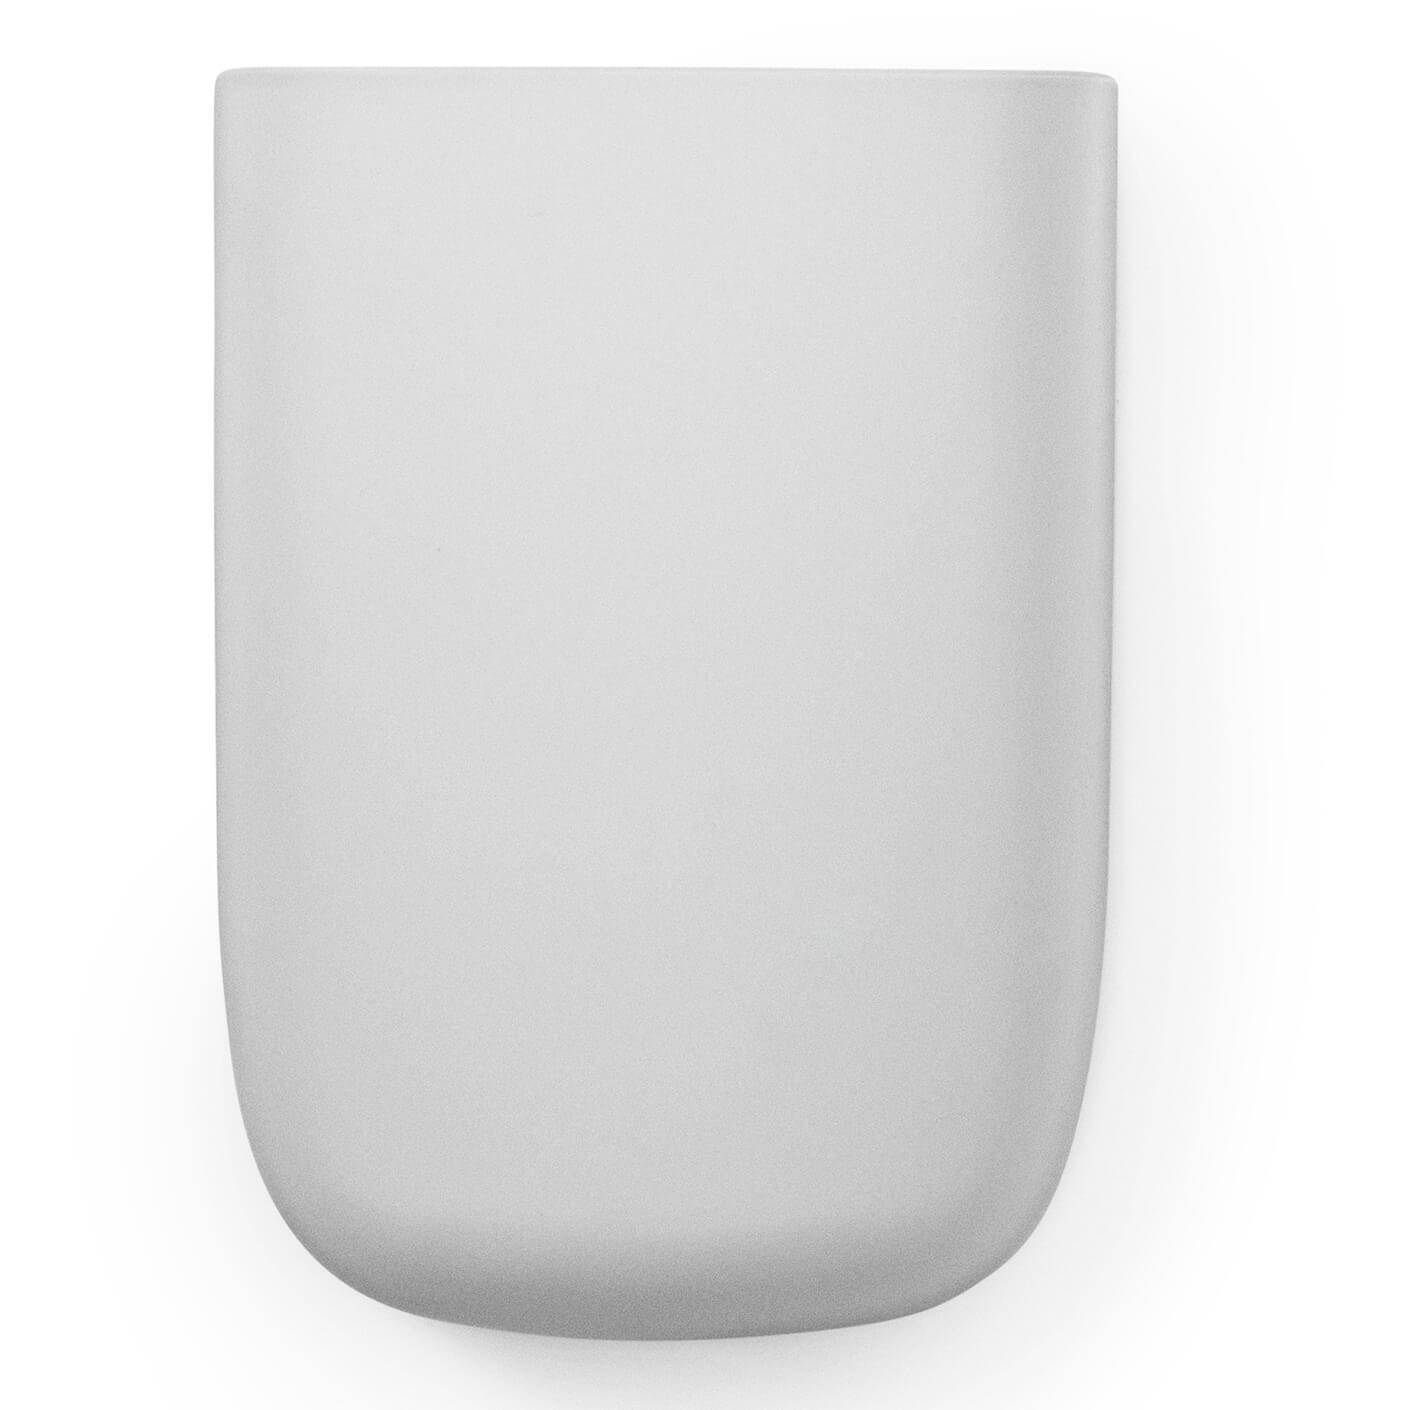 Normann Copenhagen Wall Organizer 3 - Light Grey